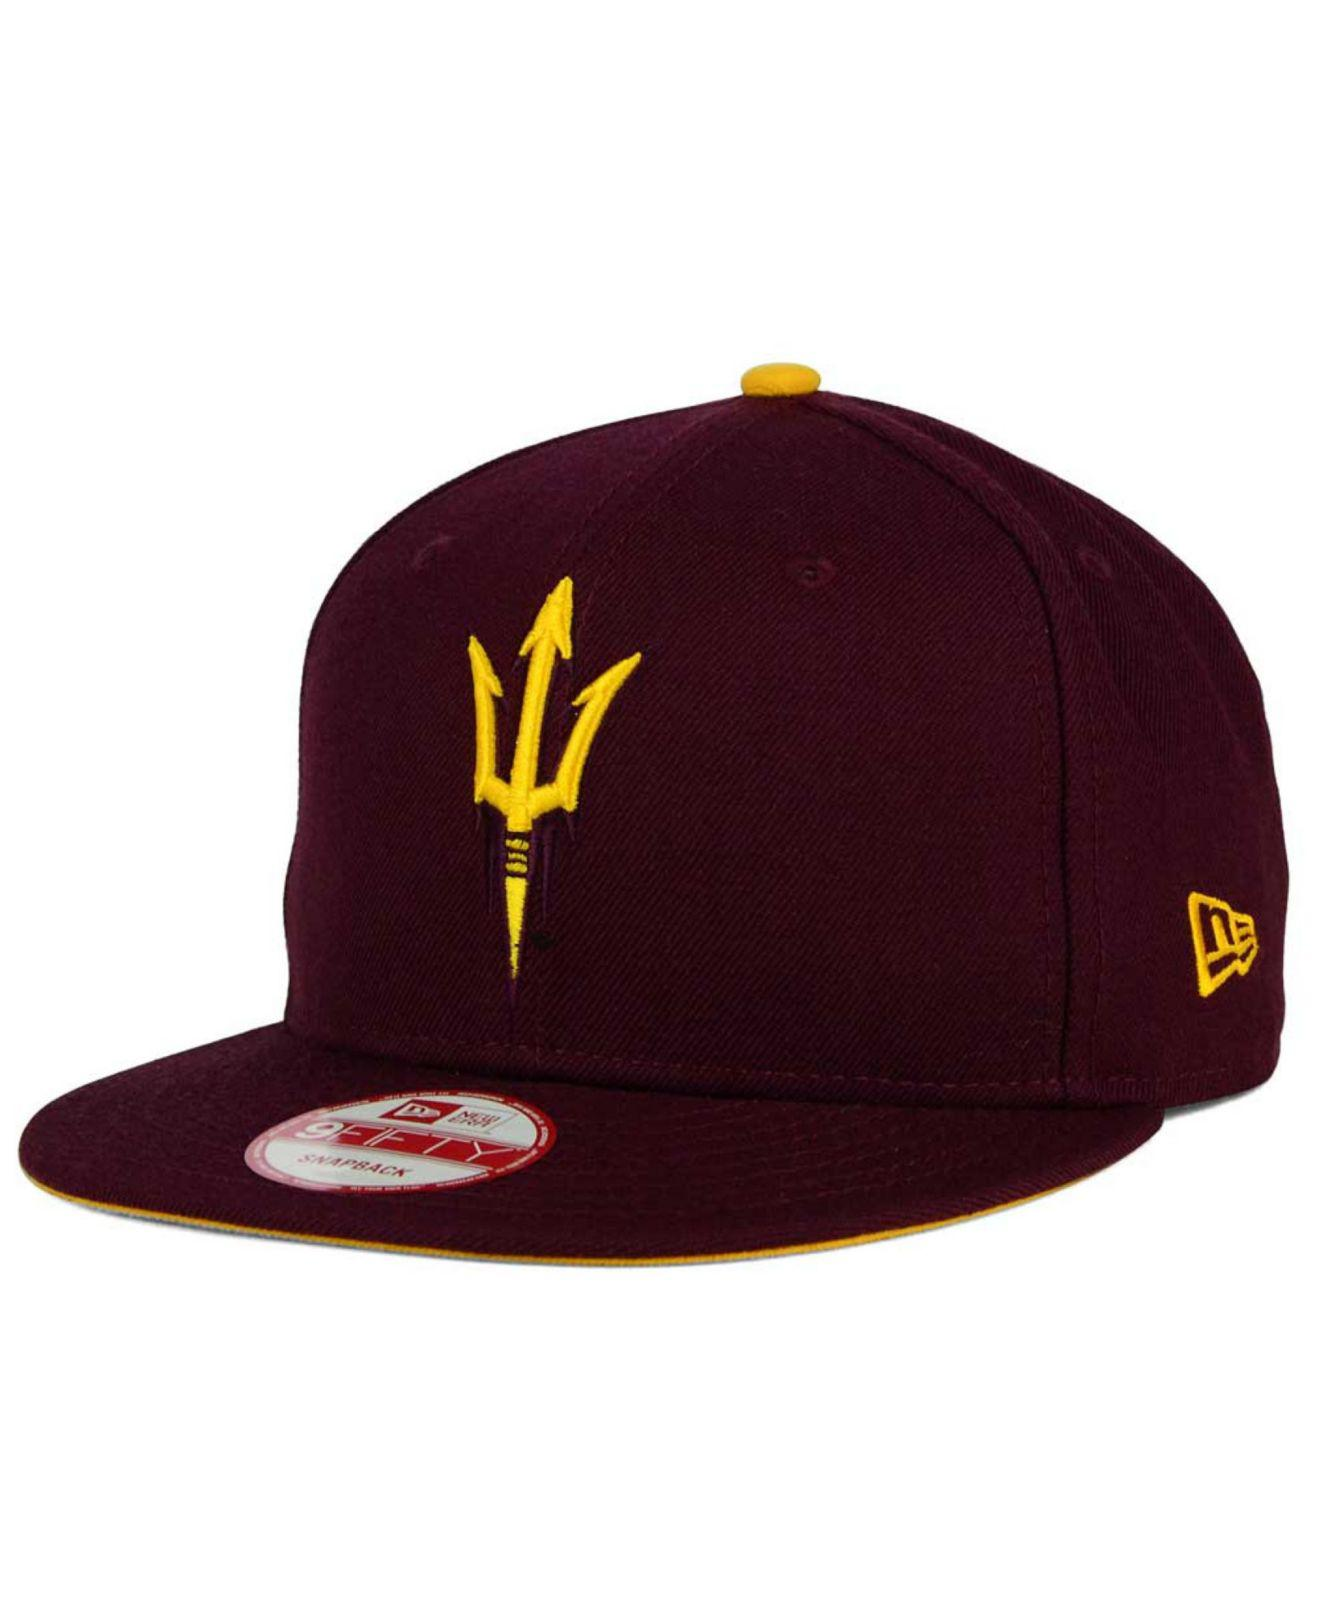 sale retailer 372a8 5a884 KTZ. Men s Purple Arizona State Sun Devils Core 9fifty Snapback Cap